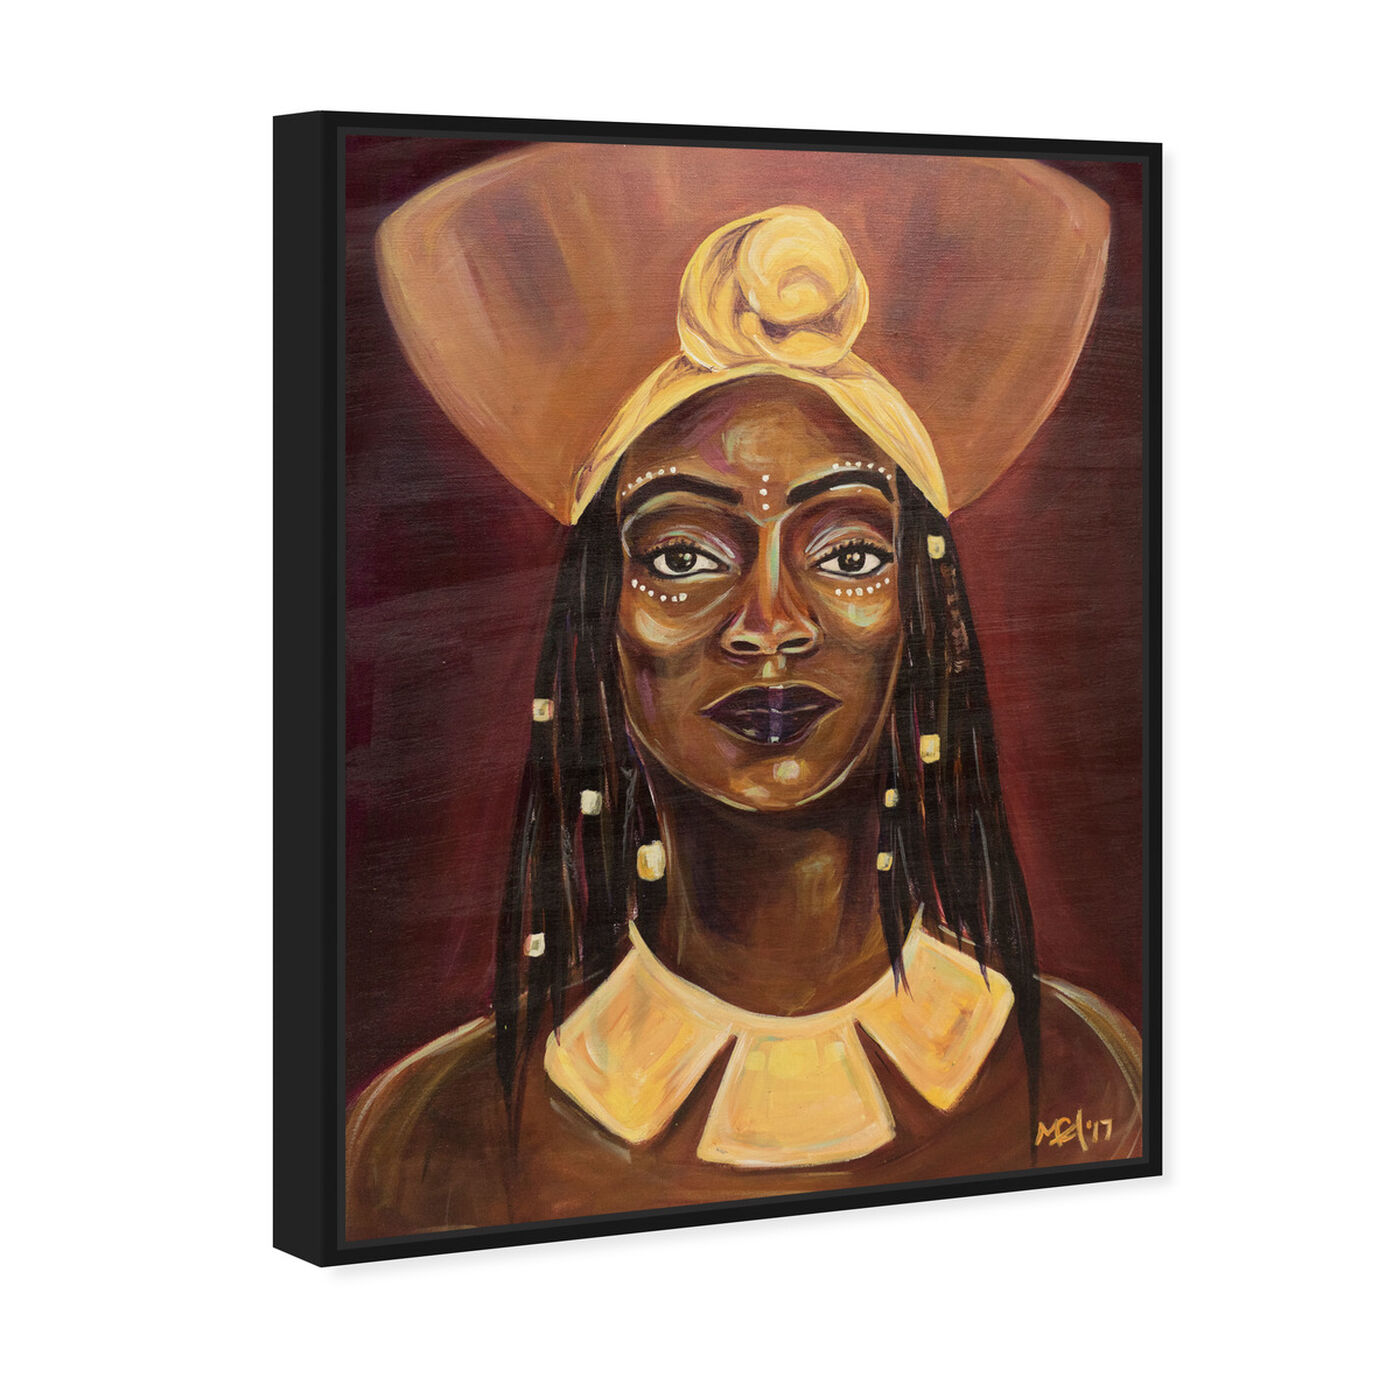 Angled view of Marissa Anderson - Queen featuring people and portraits and portraits art.